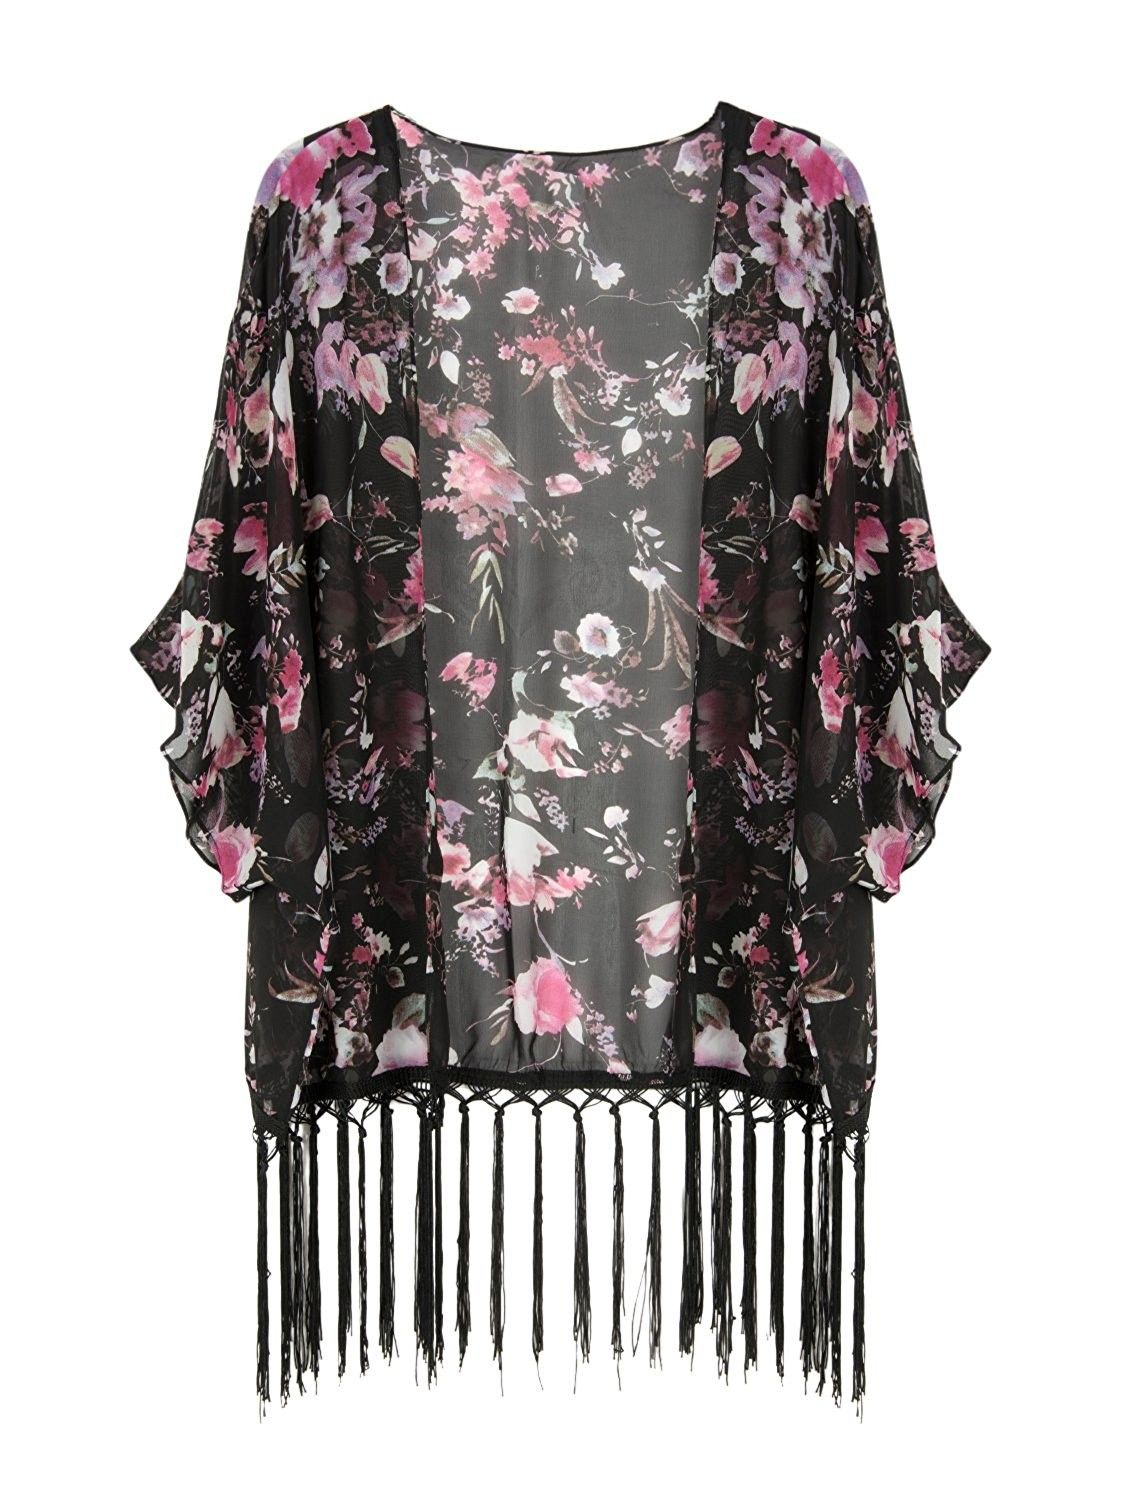 Sleeved Tribal Chiffon Loose Kimono Cardigan Swimsuit Cover Up for Women